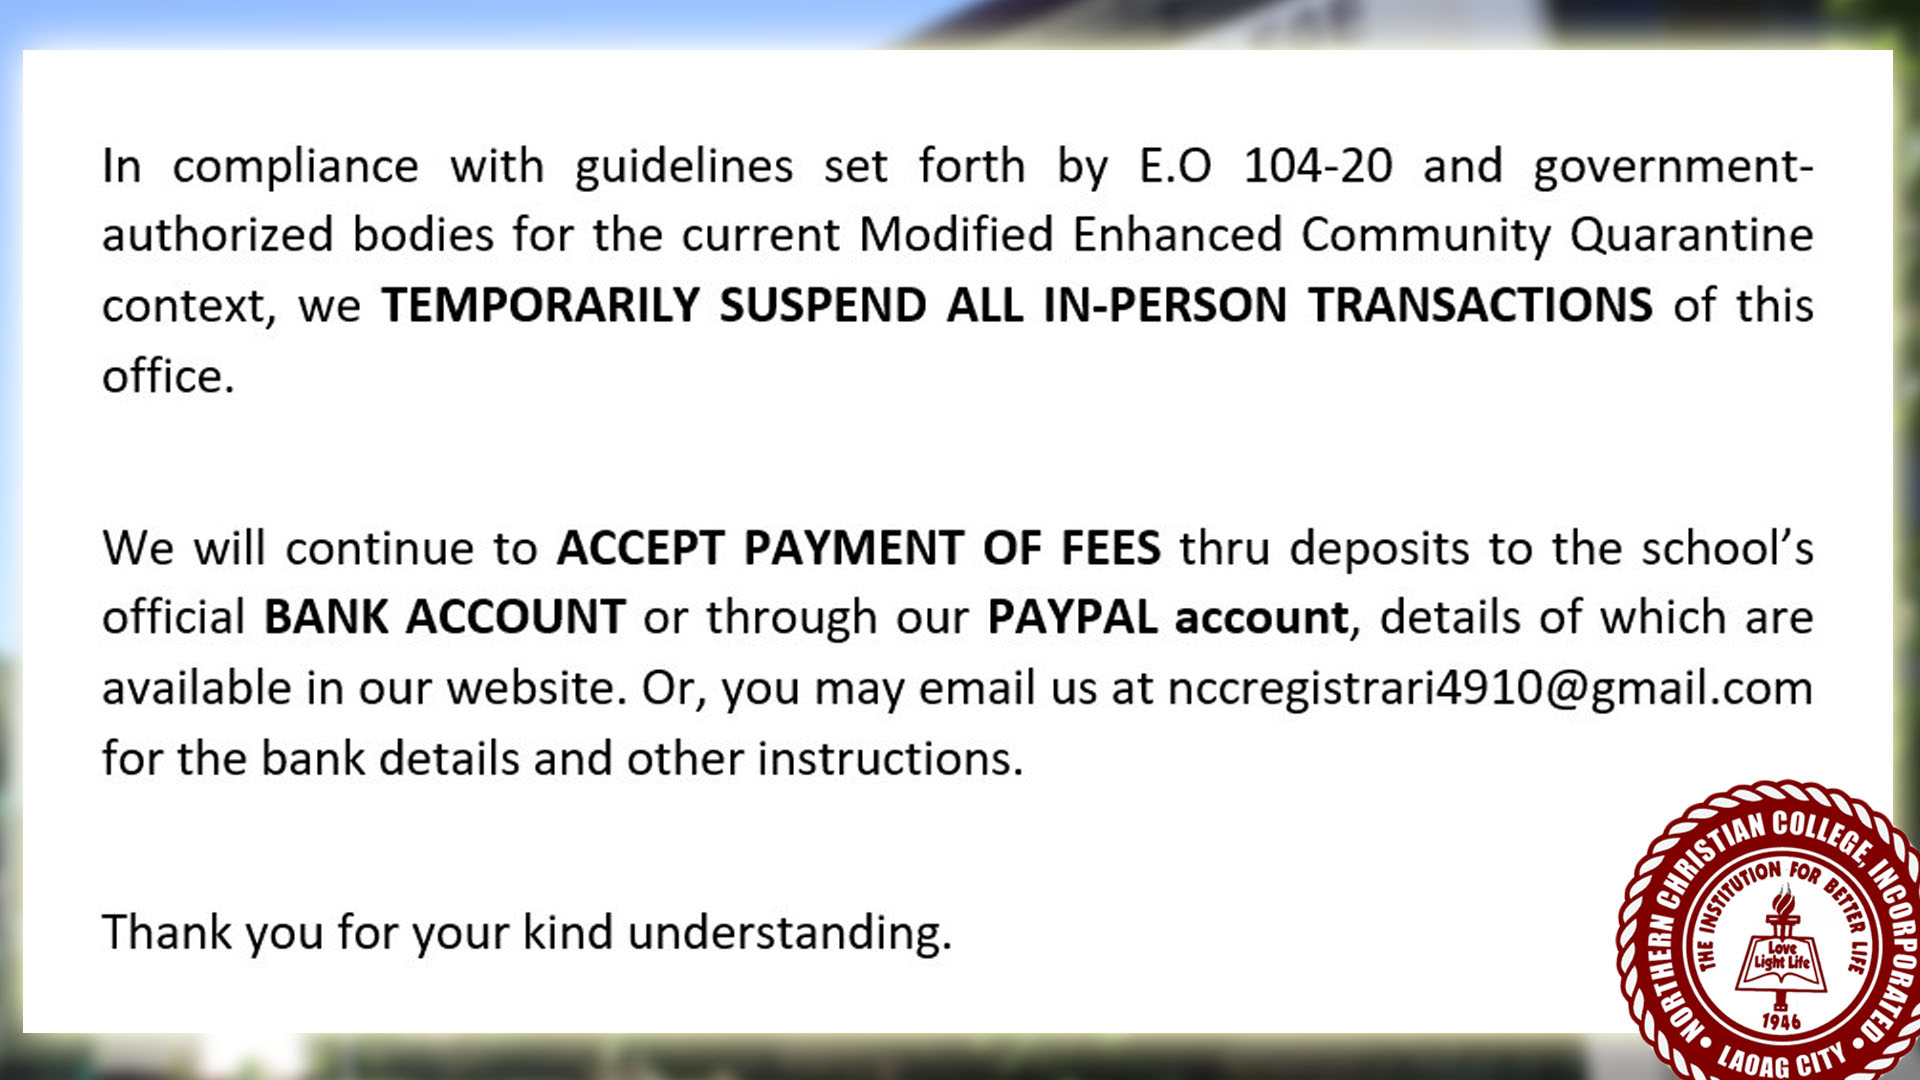 ANNOUNCEMENT ON ONLINE PAYMENT OF FEES